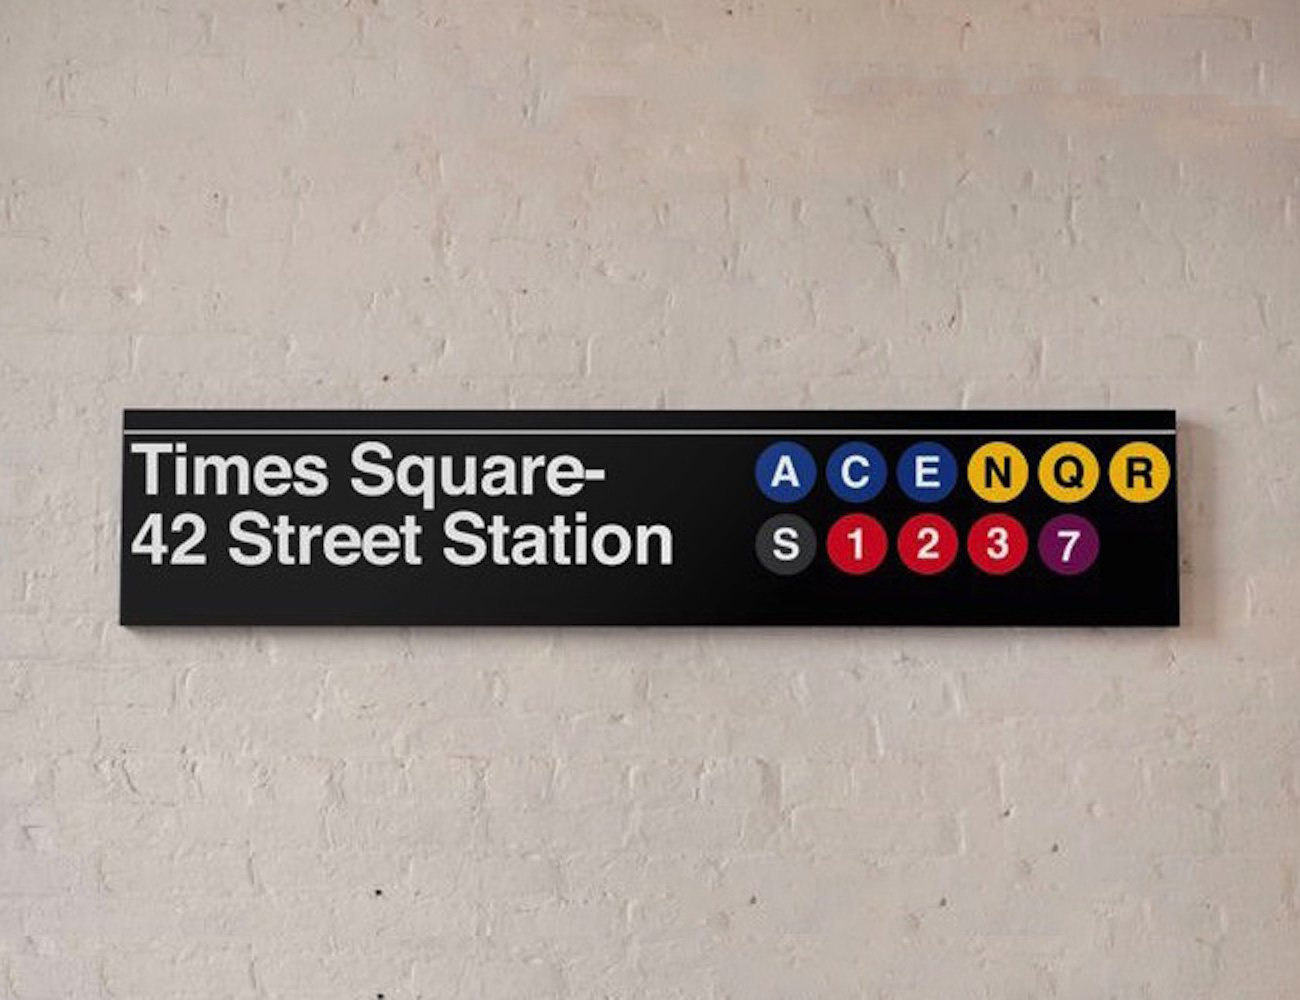 times-square-42-street-mta-sign-01